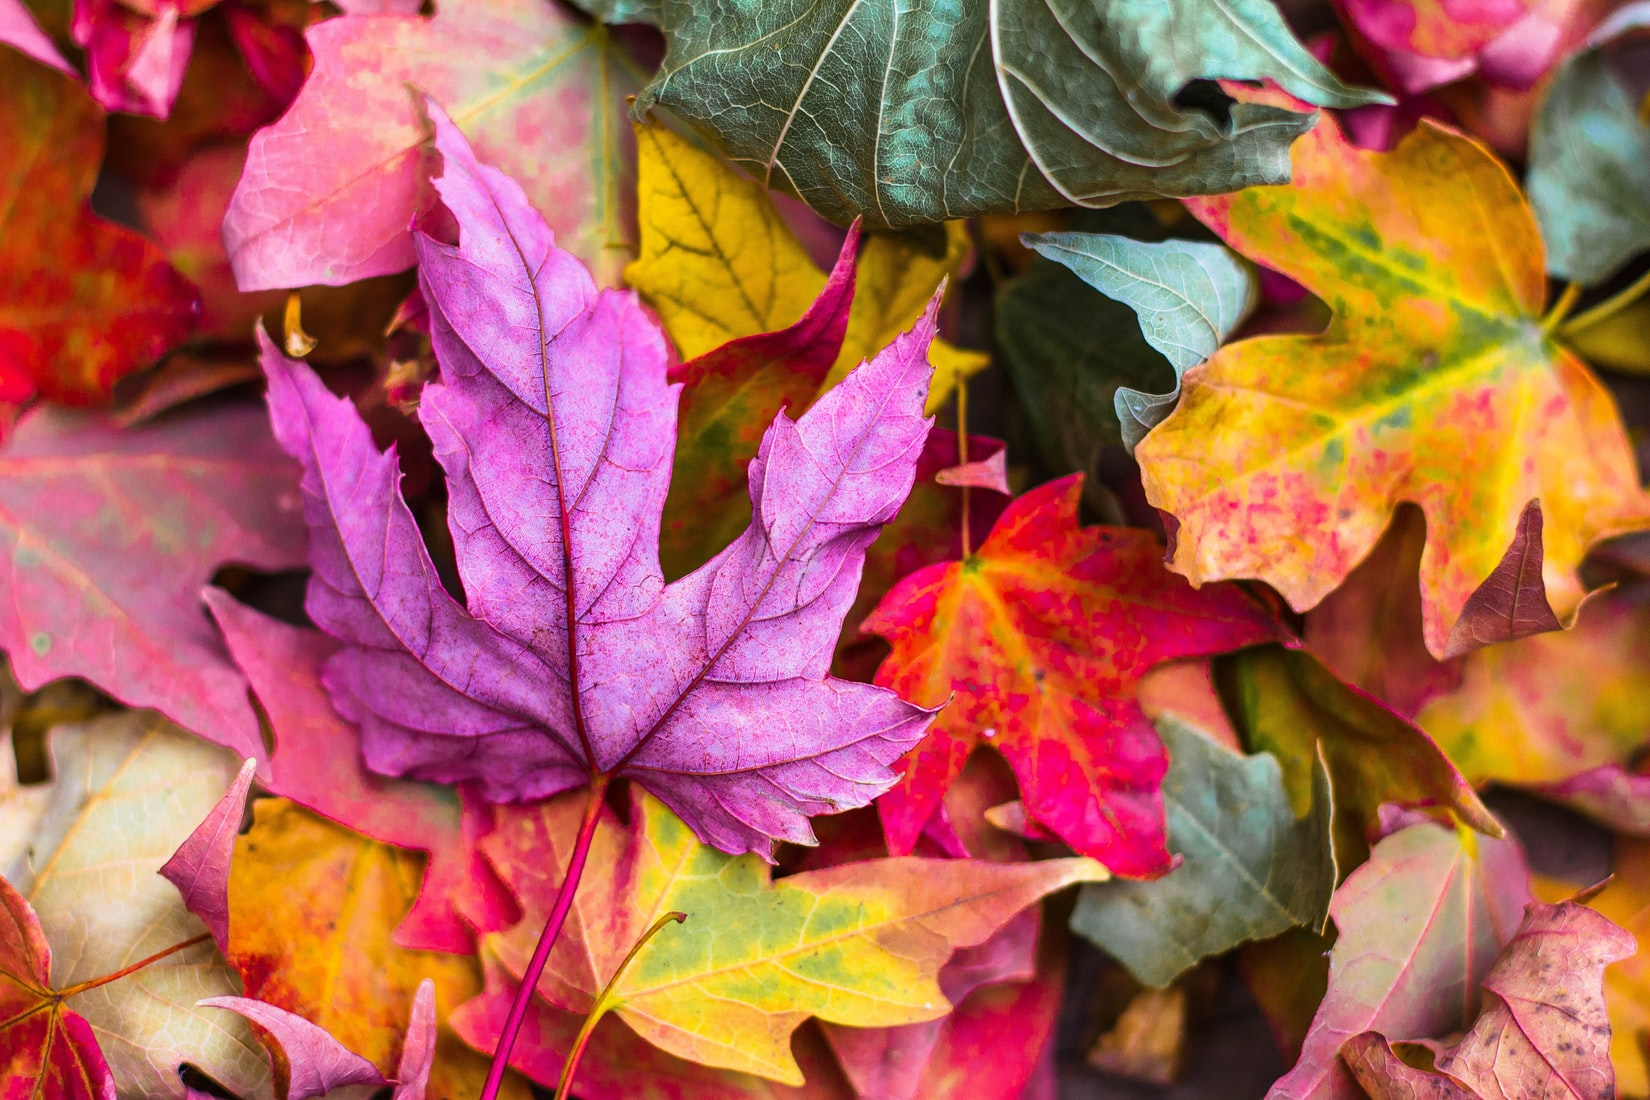 Varied collection of brightly coloured leaves